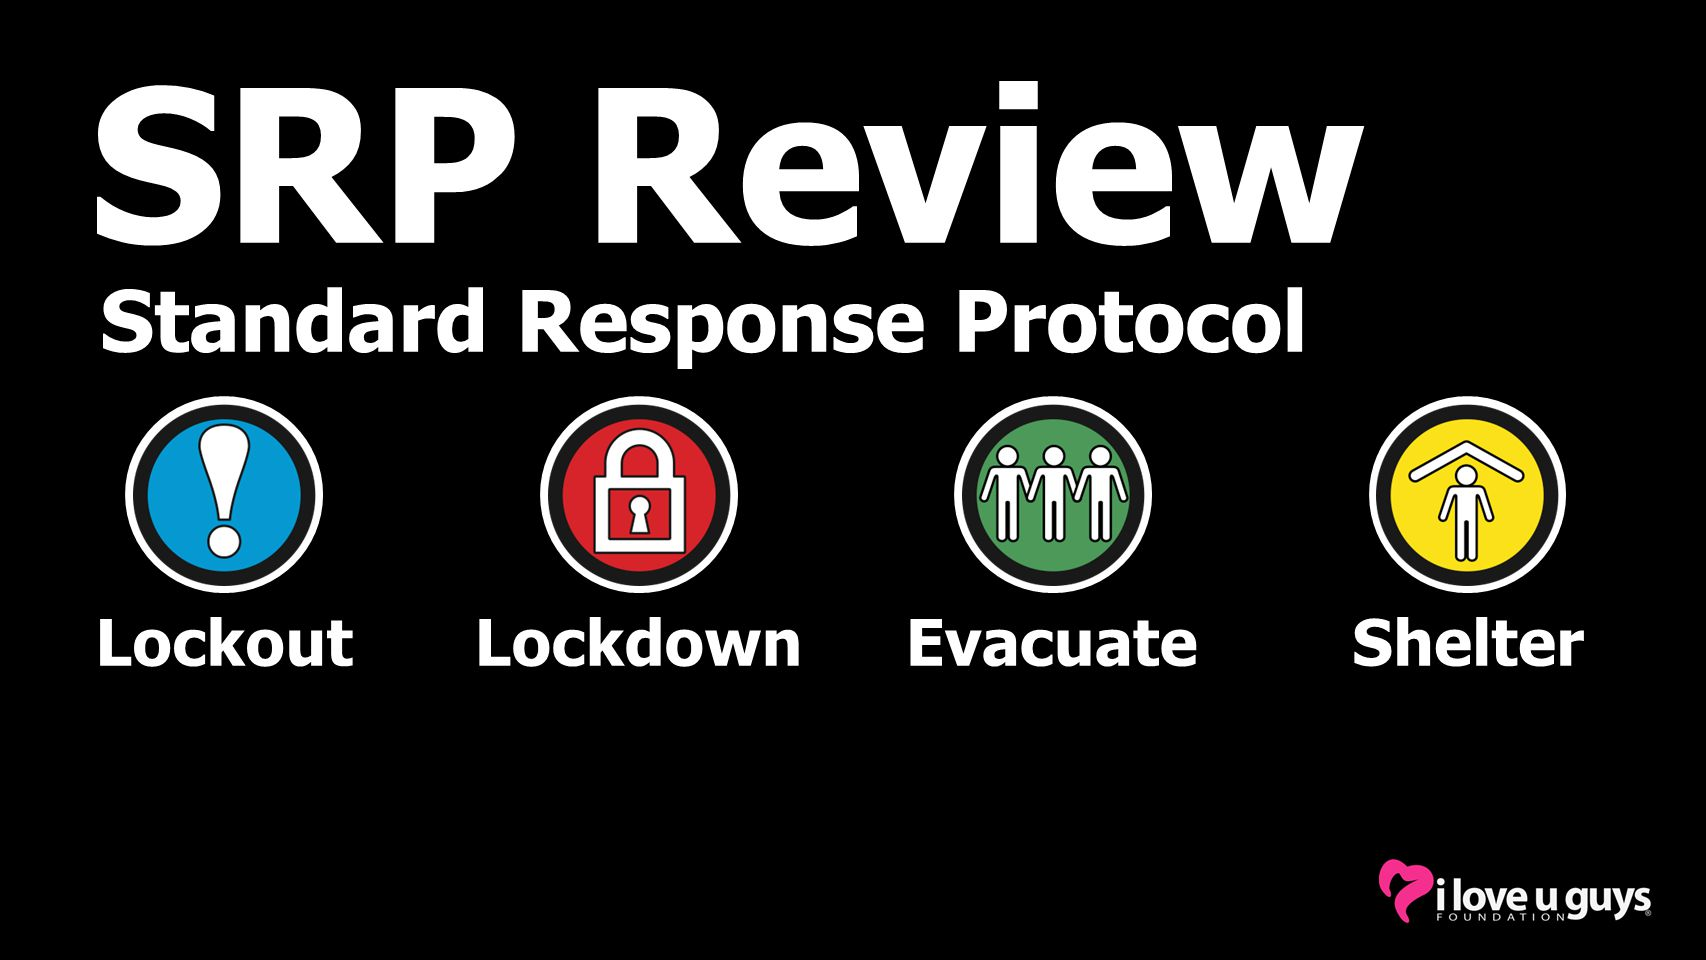 SRP Review Standard Response Protocol Lockout Lockdown Evacuate